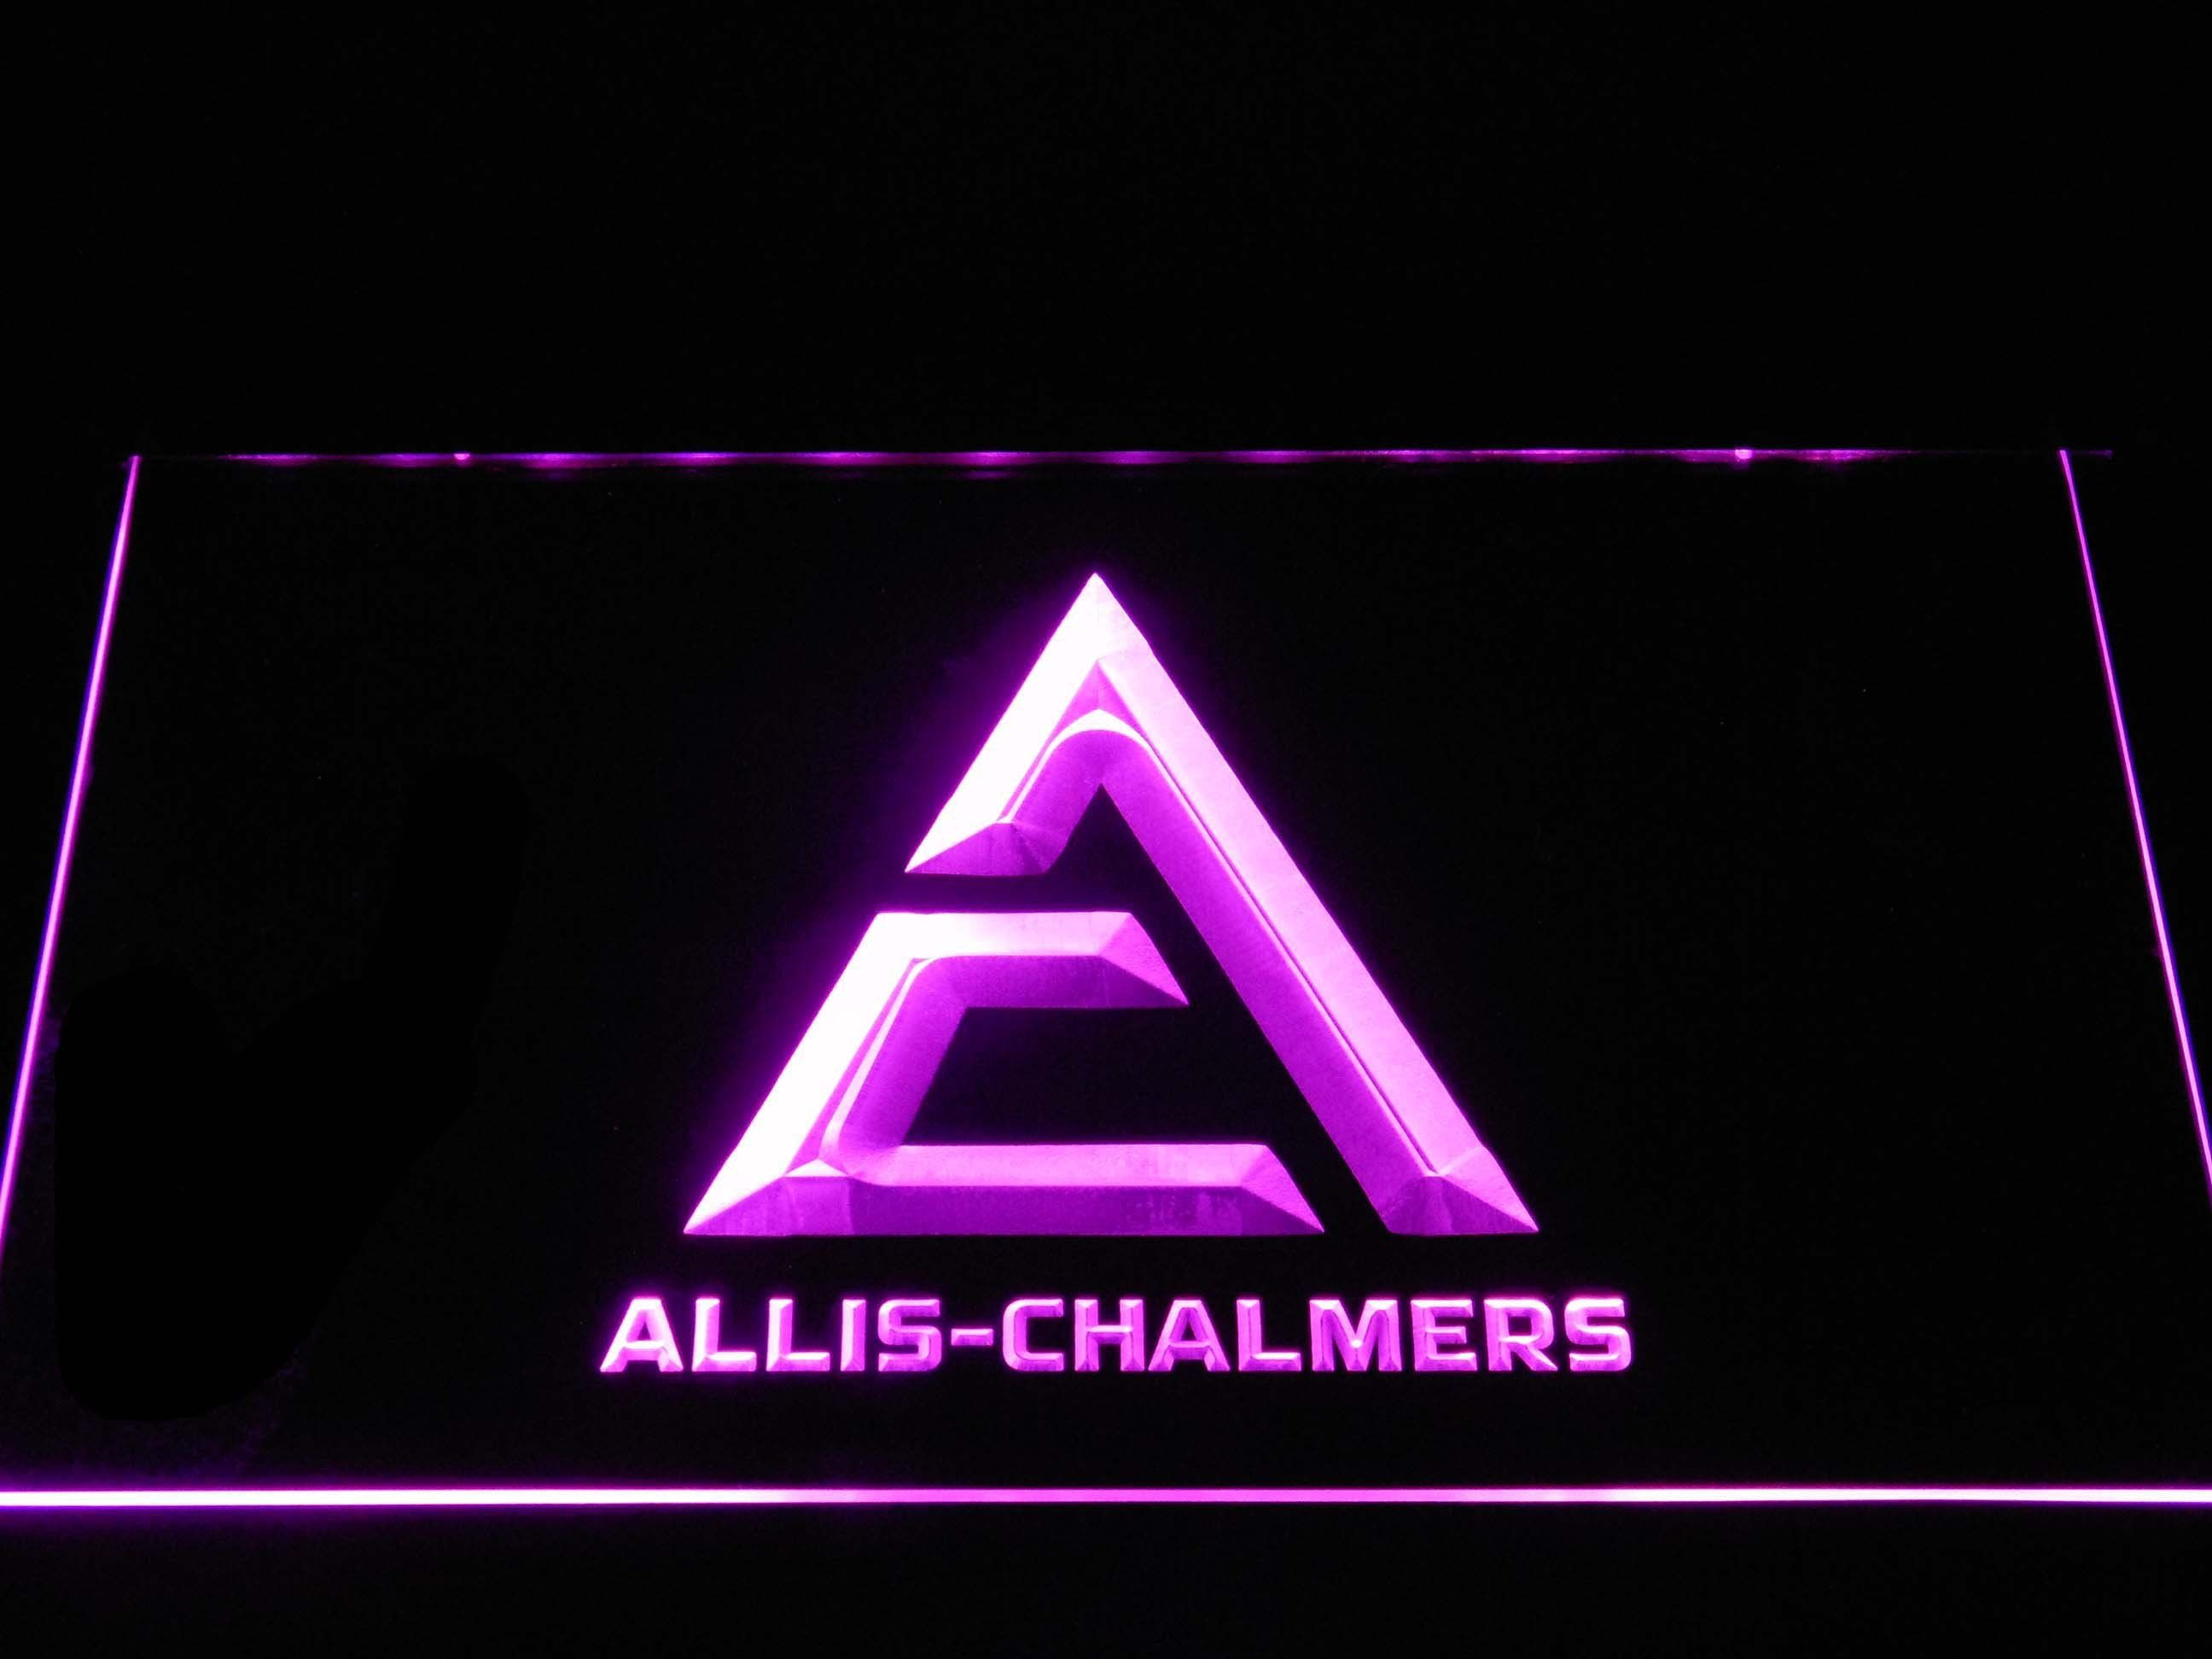 AllisChalmers Triangle Logo LED Neon Sign Led neon